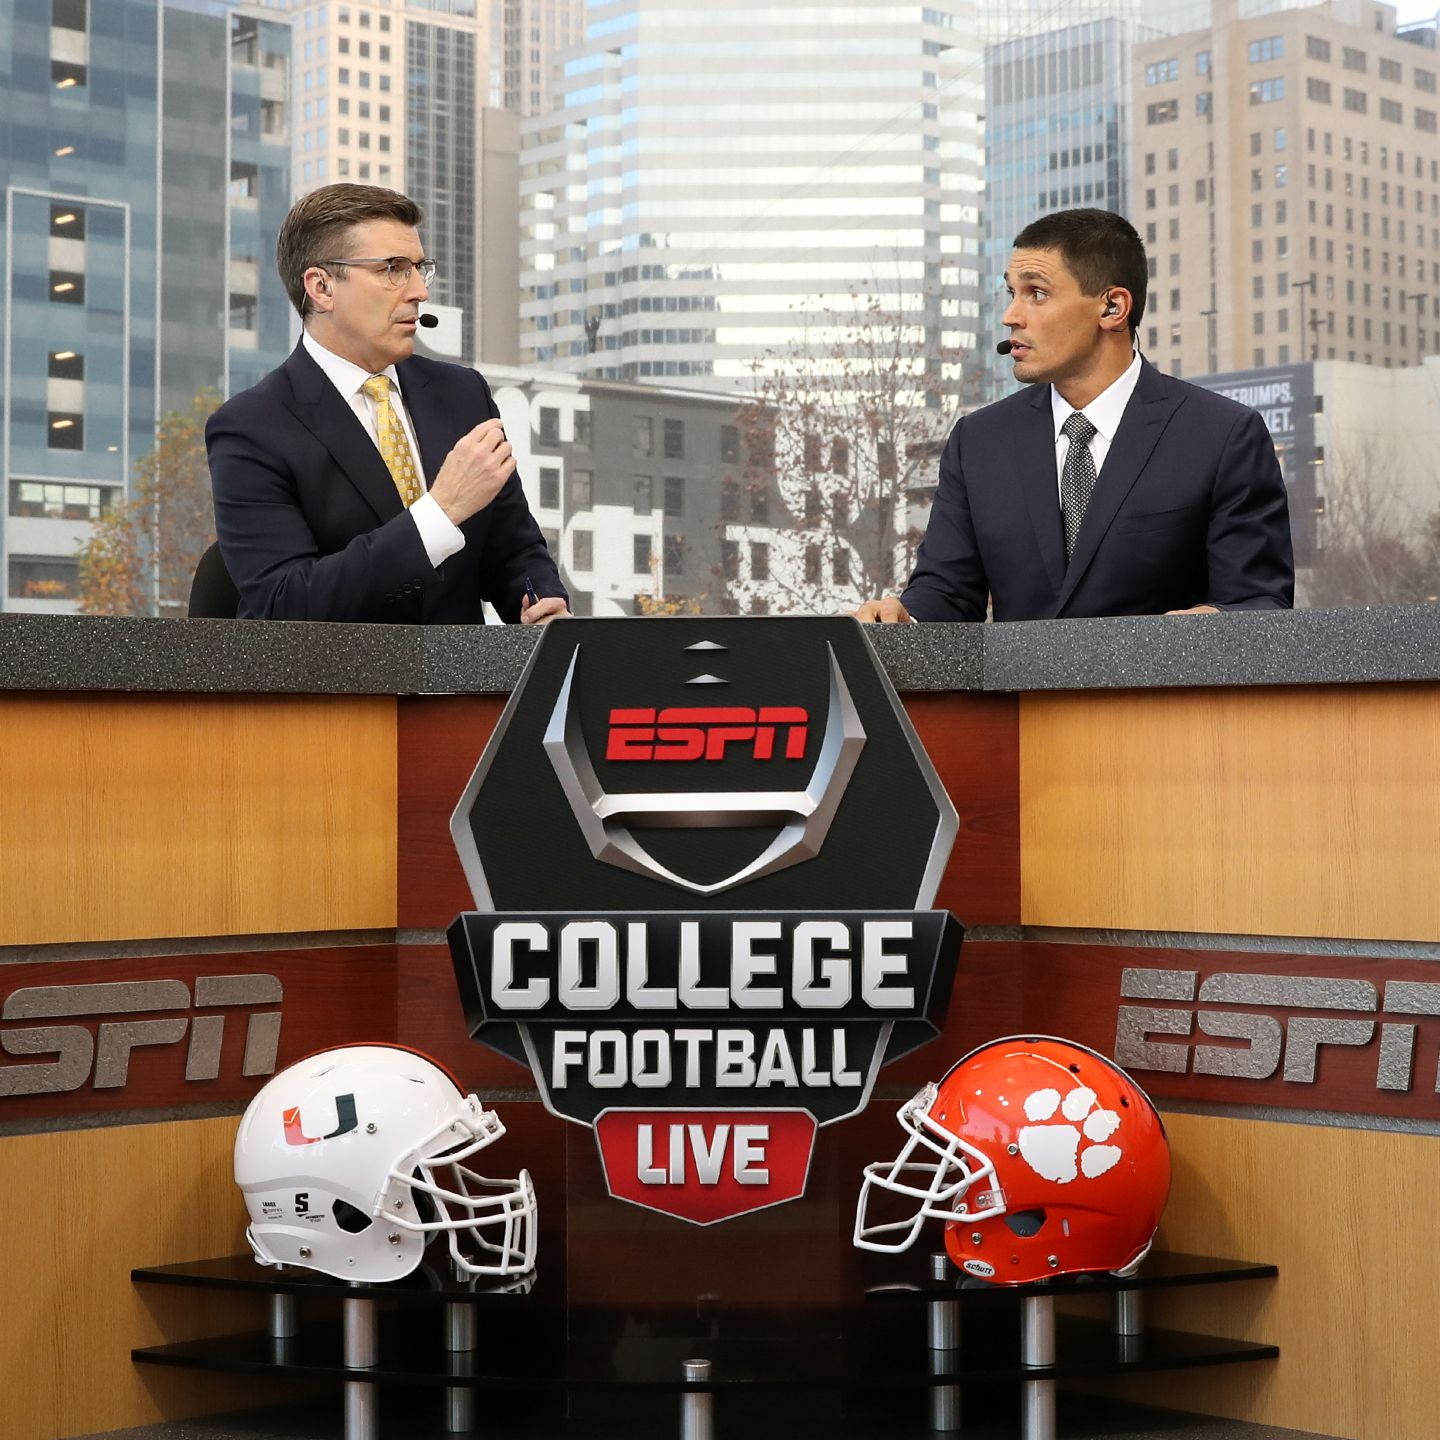 espn college football live stream free